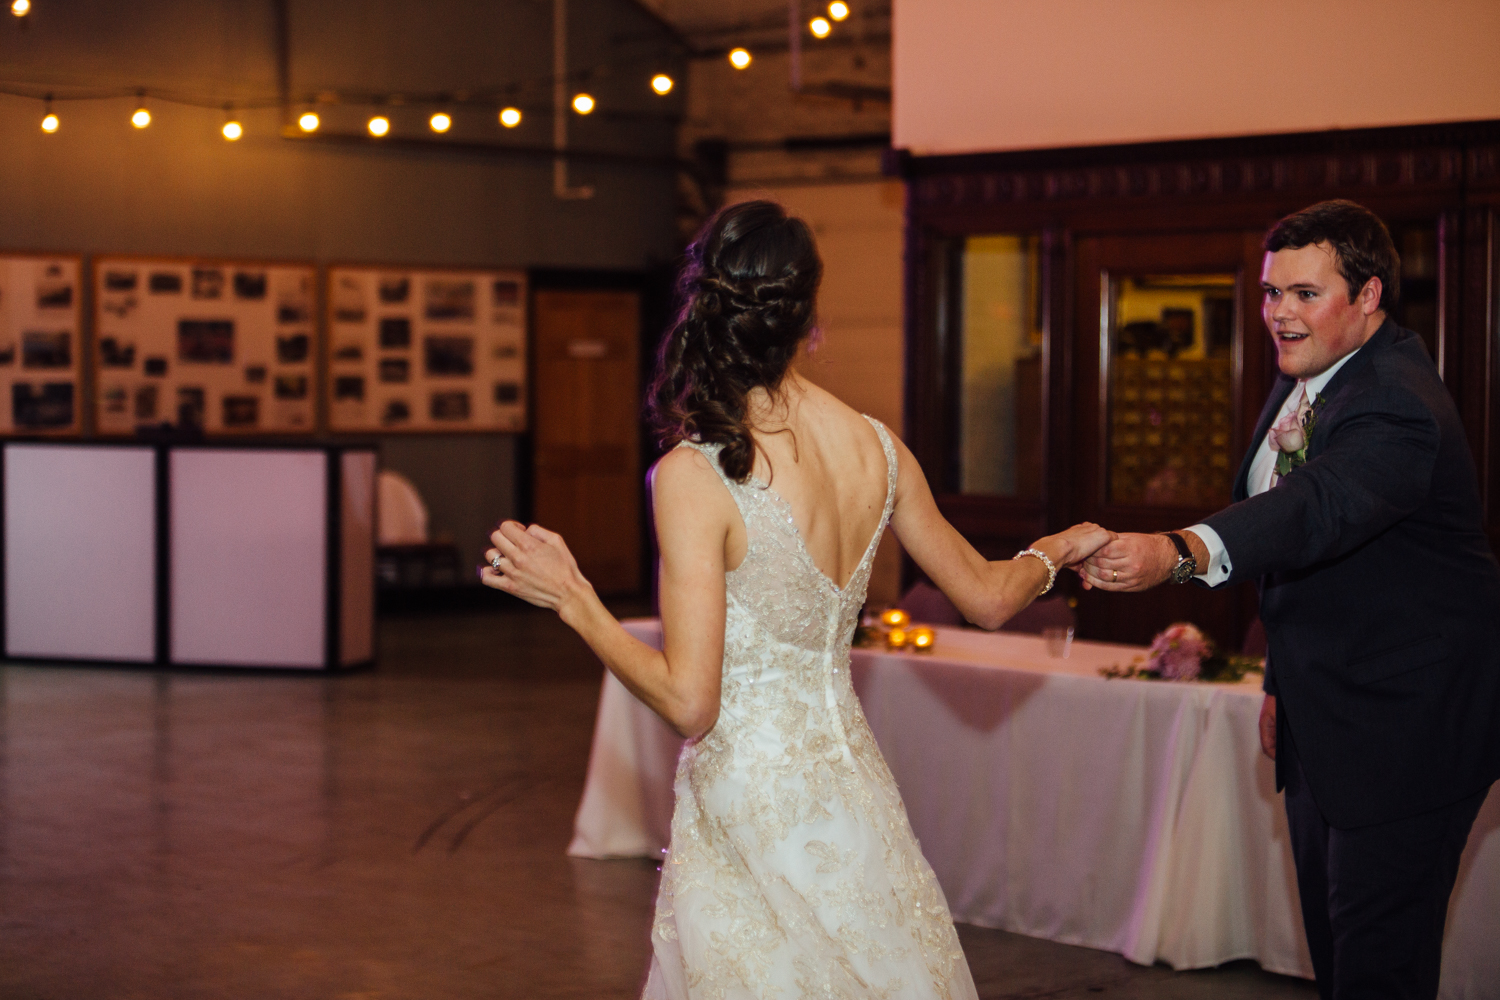 Fun, Intimate Spring Wedding by Corrie Mick Photography-93.jpg